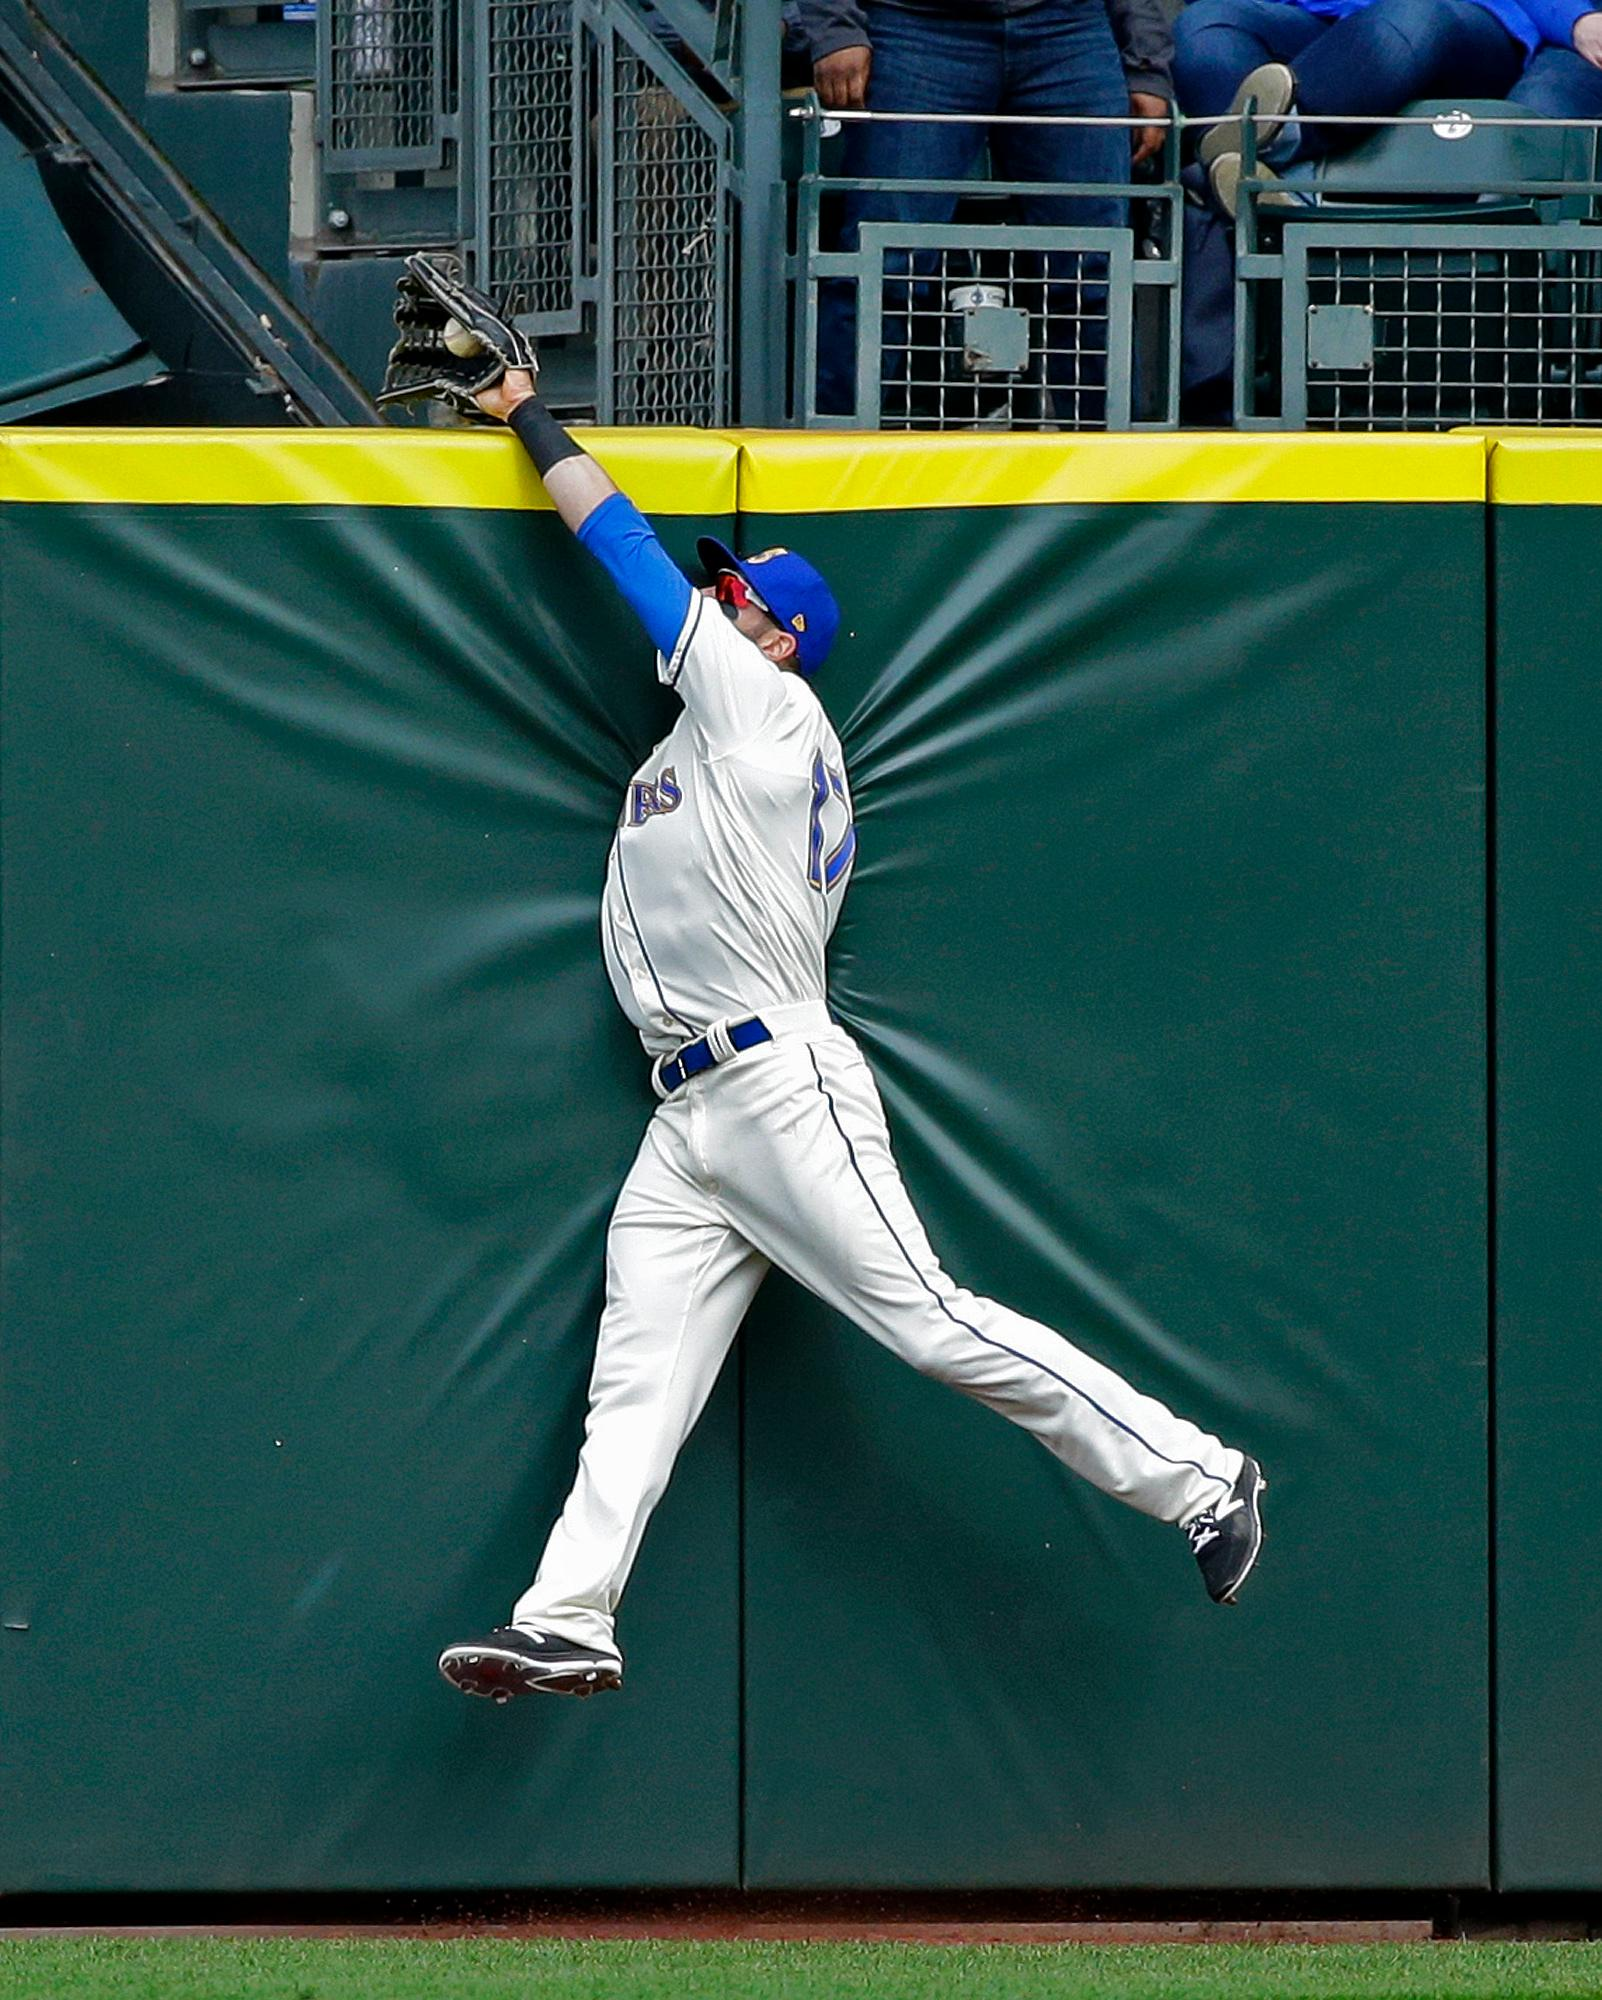 Seattle Mariners center fielder Mitch Haniger makes a leaping catch at the wall to rob Texas Rangers' Joey Gallo of a two-run home run with the score tied in the eighth inning of a baseball game, Sunday, April 16, 2017, in Seattle. (AP Photo/Ted S. Warren)